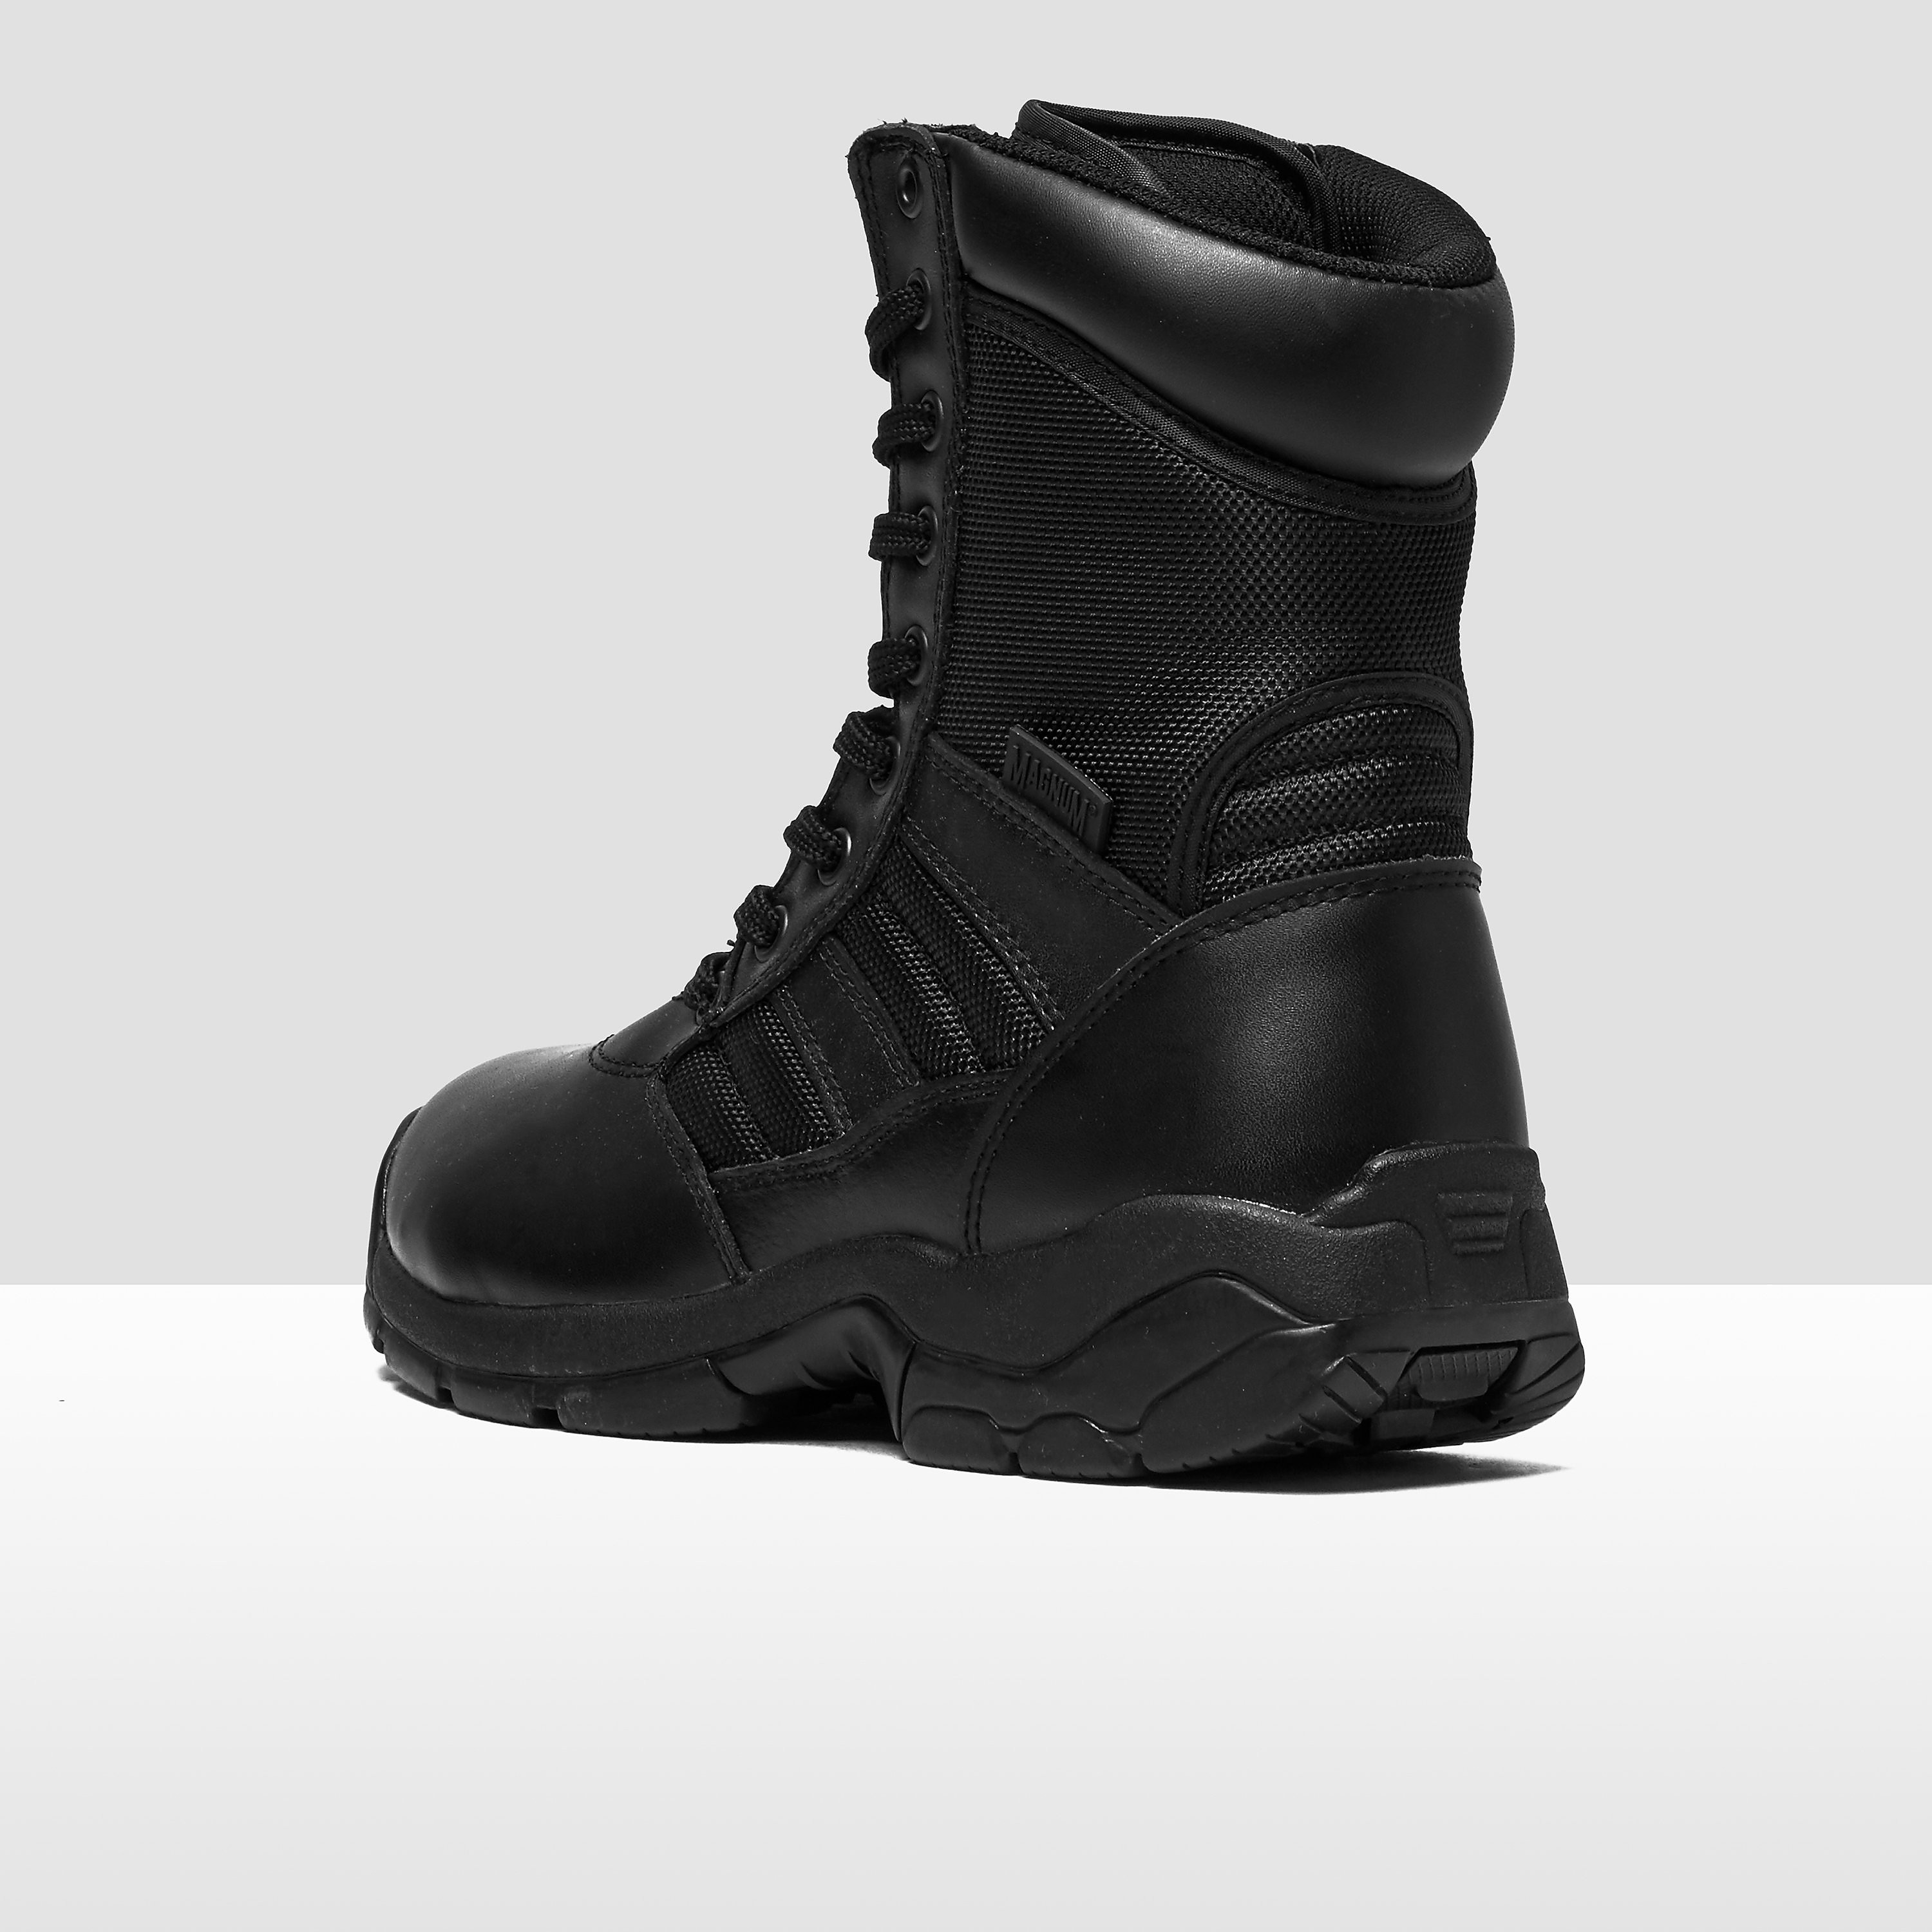 Magnum Panther 8.0 Boots